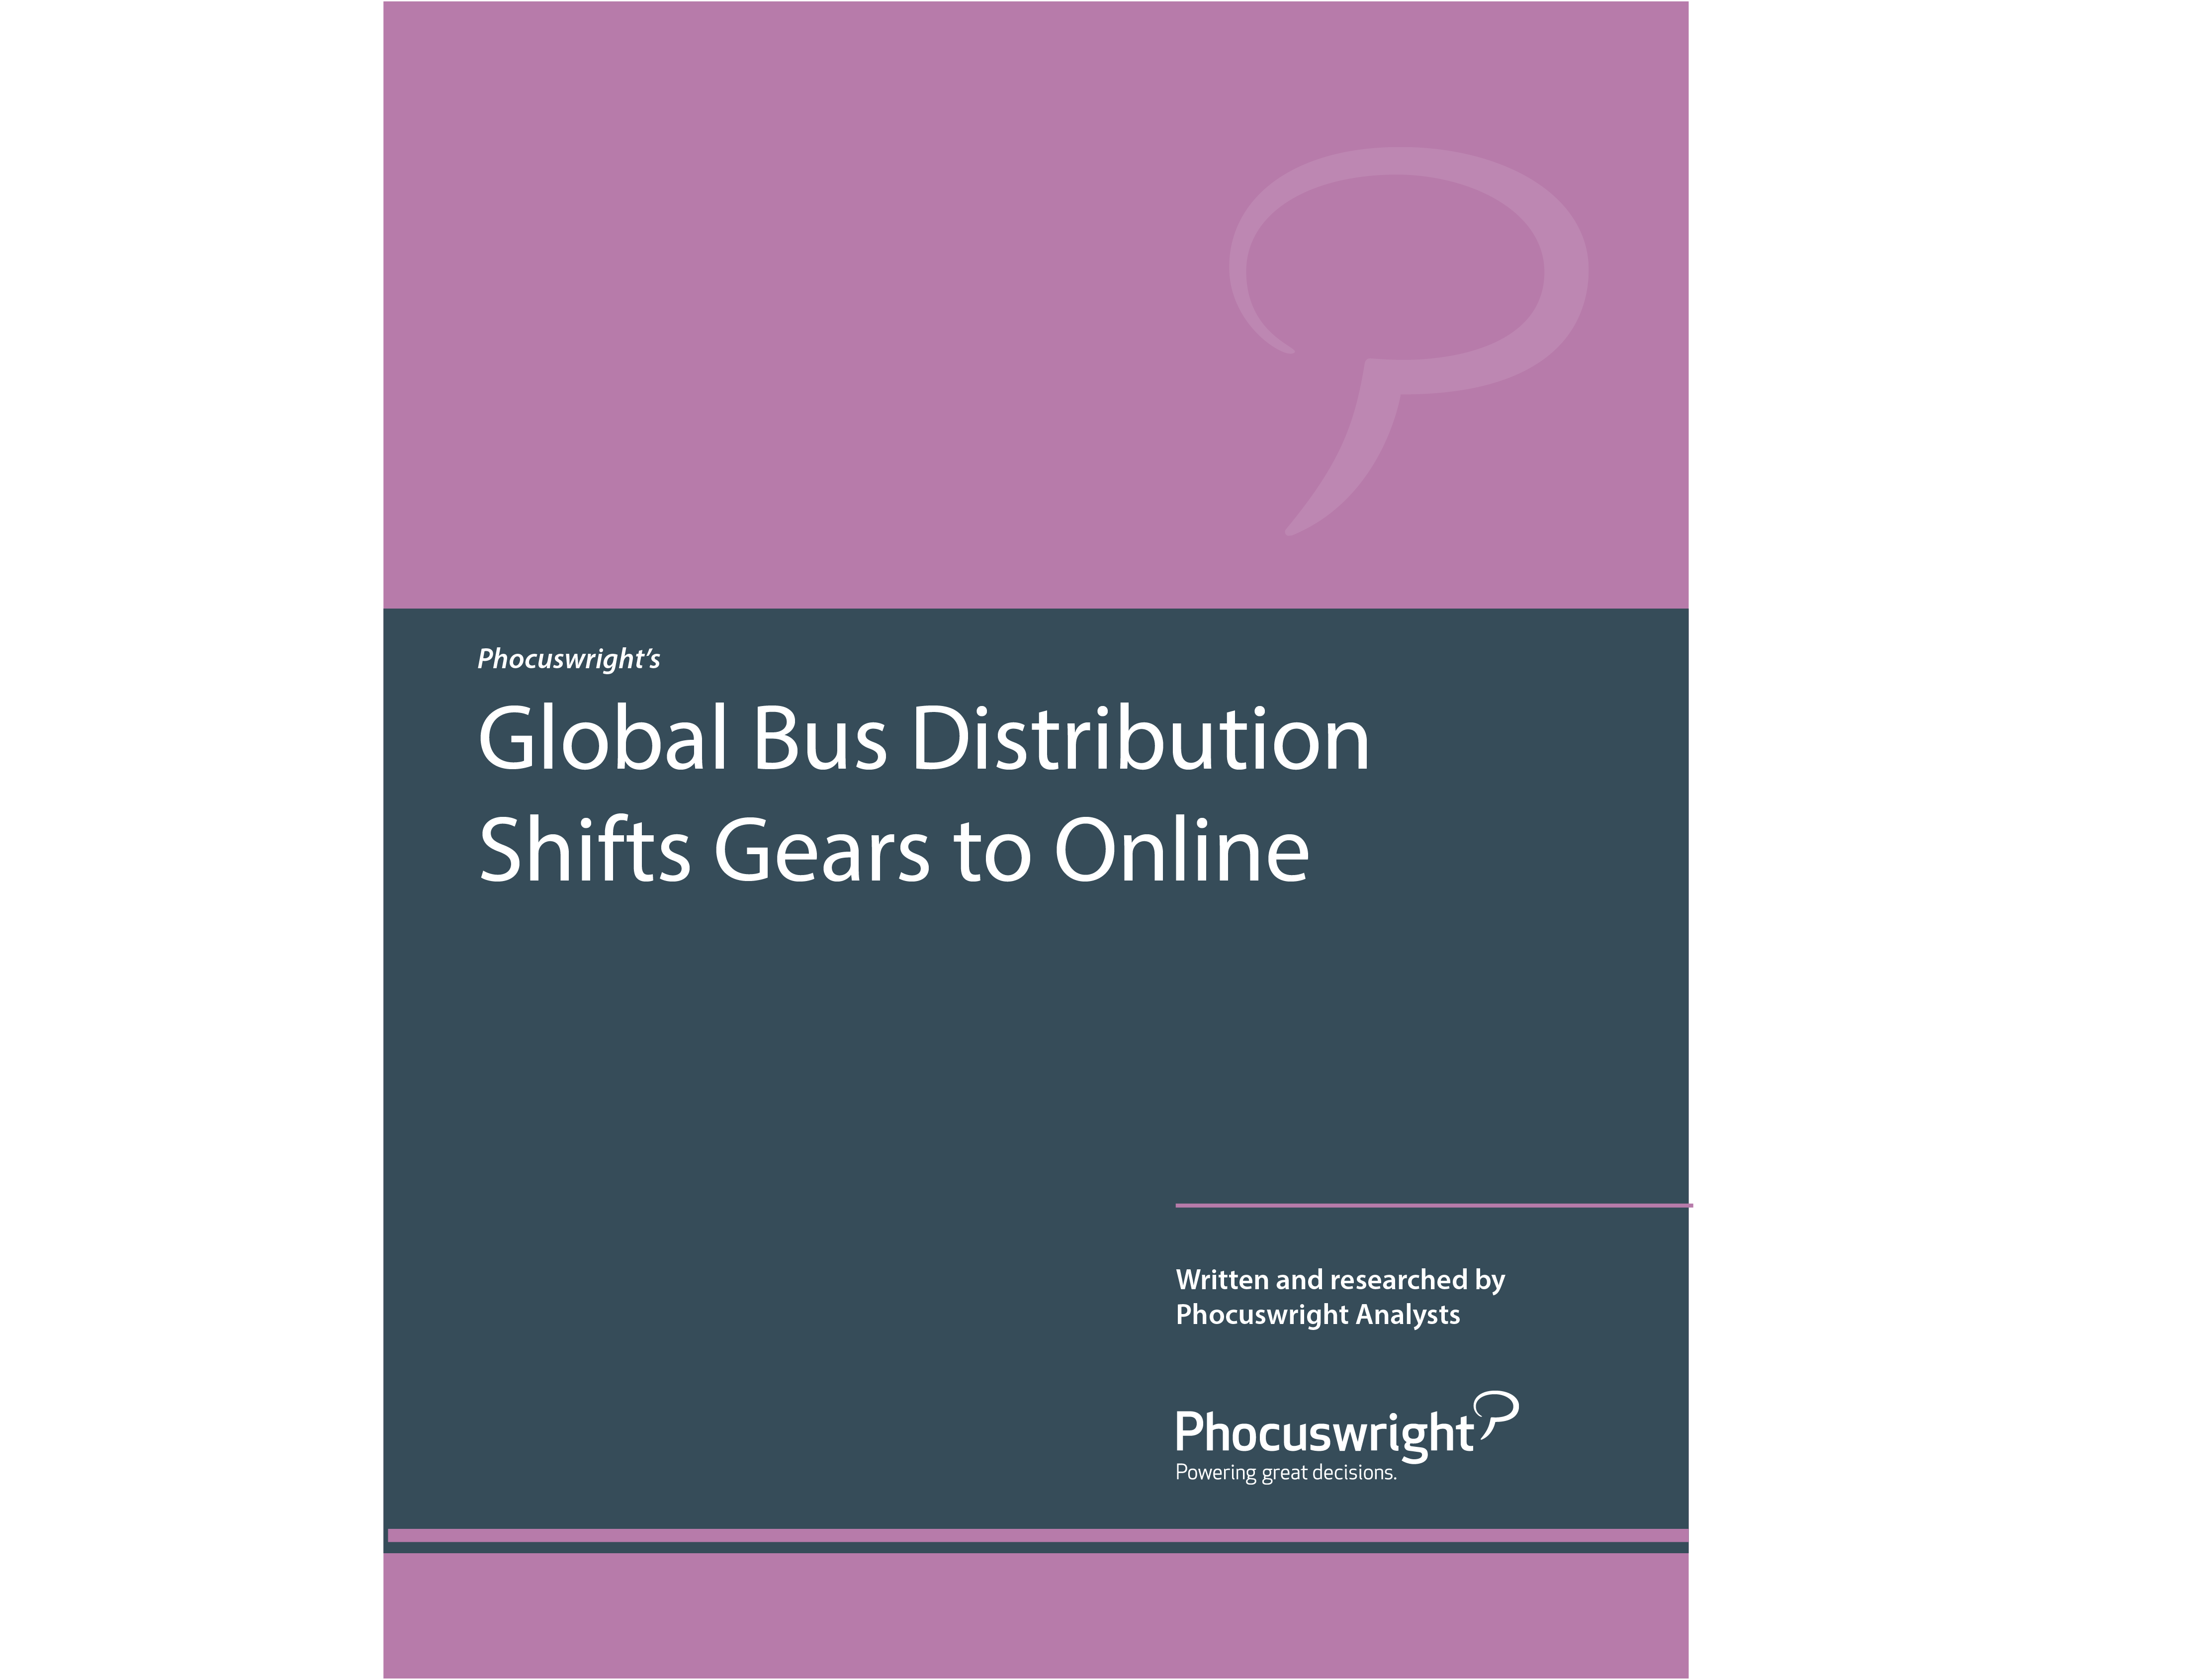 Global Bus Distribution Shifts Gears to Online